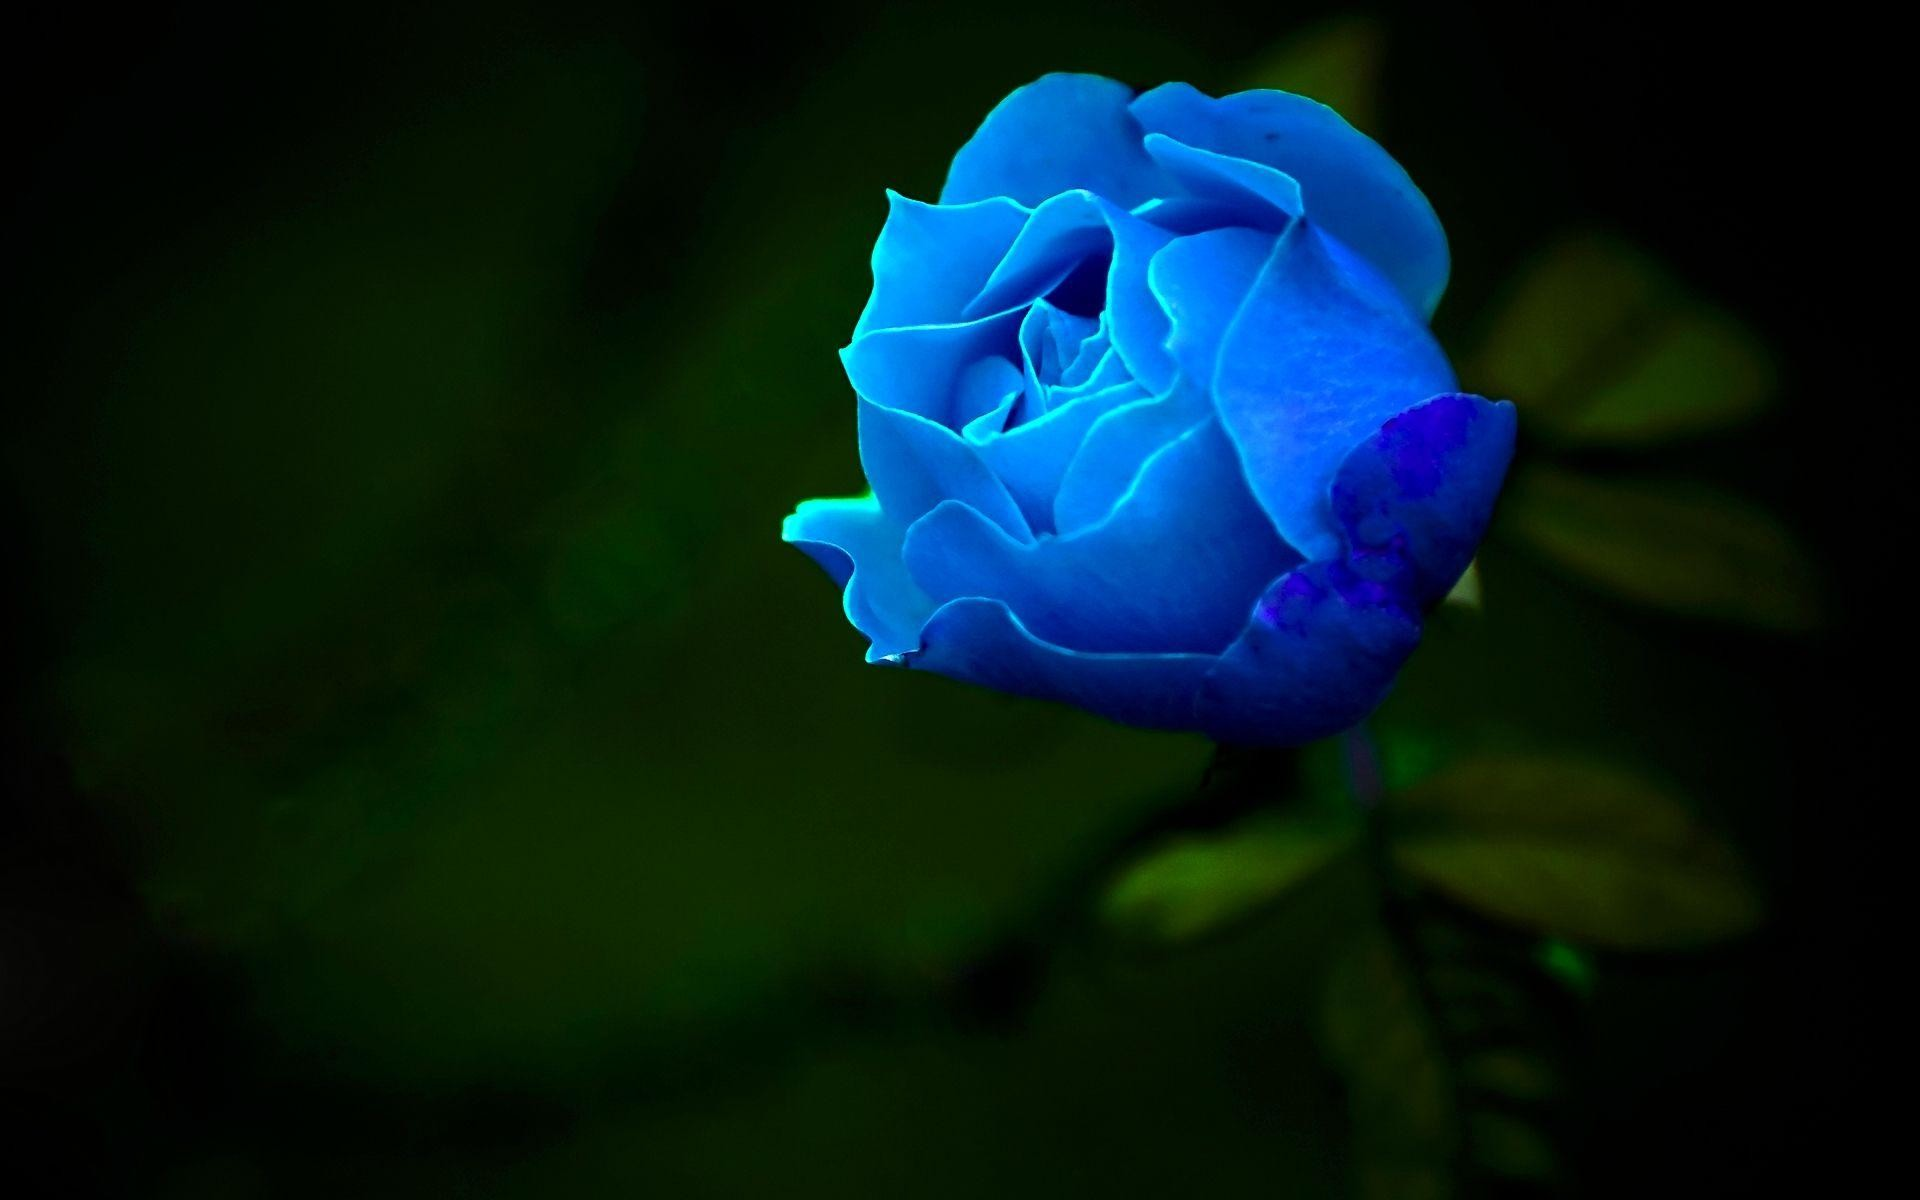 1920x1200 Blue Rose Android HD Wallpaper - HD Wallpapers